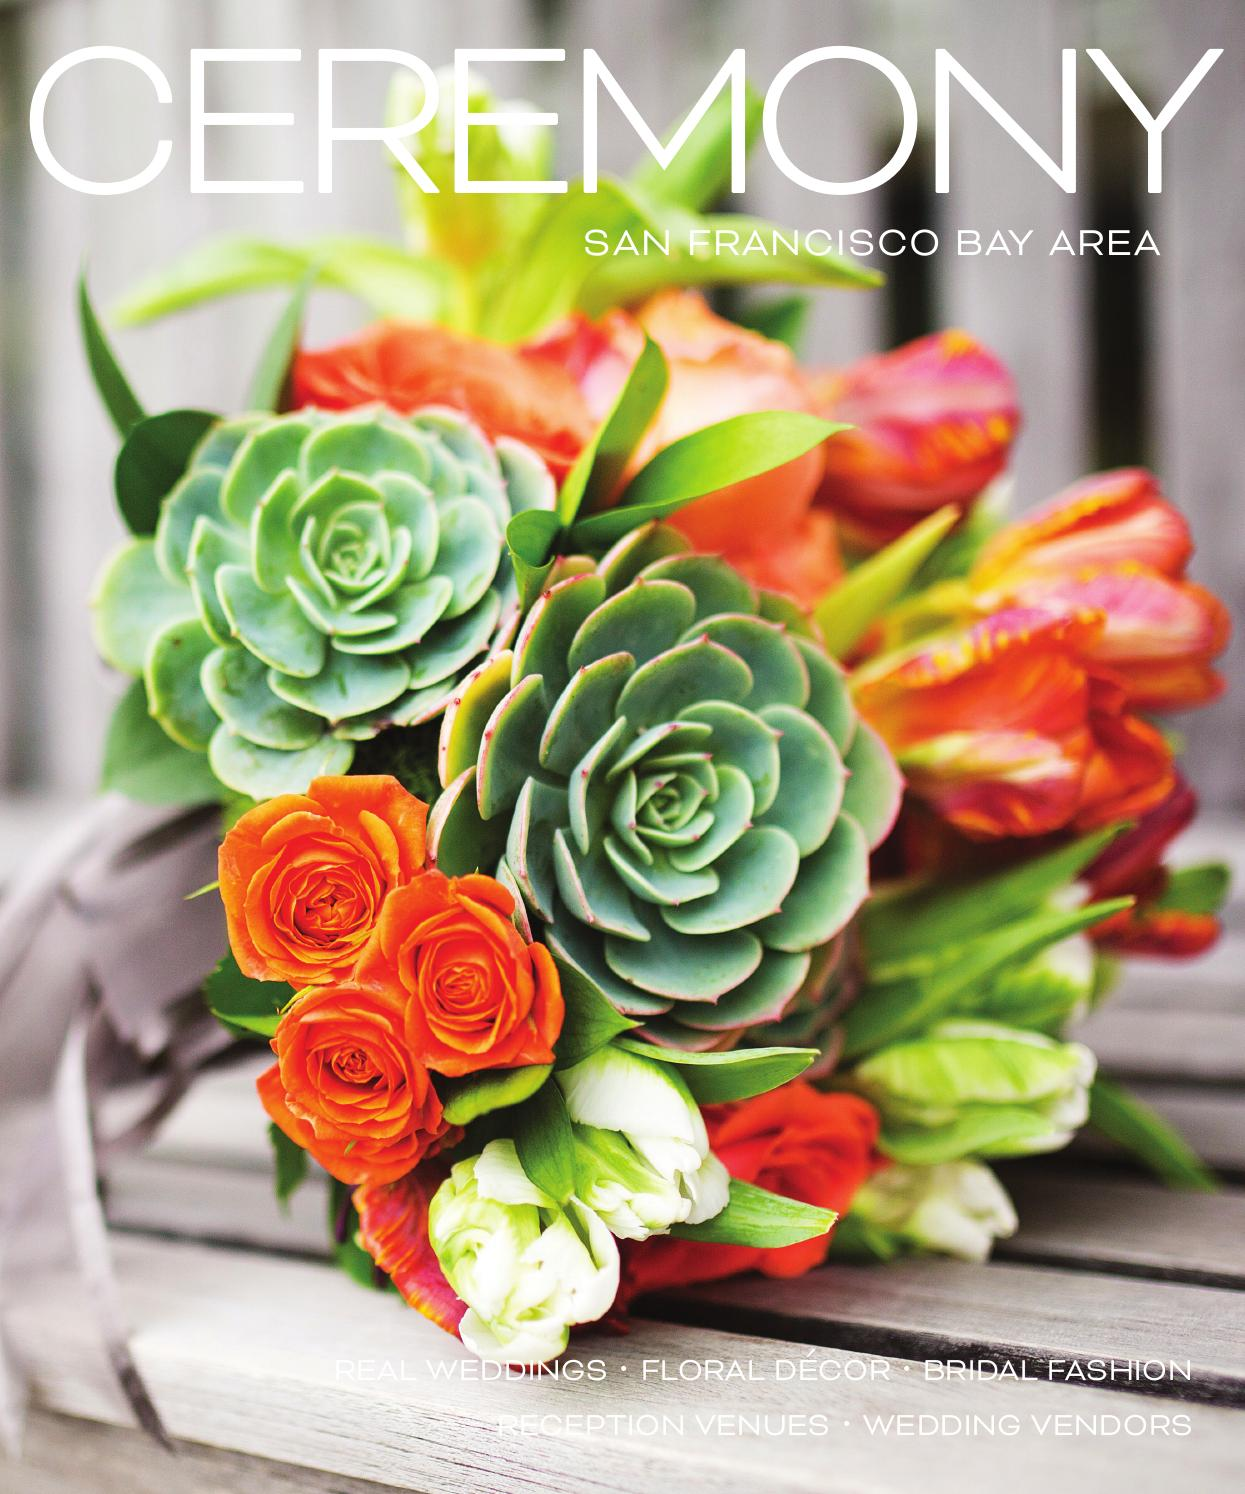 Ceremony Magazine 2015